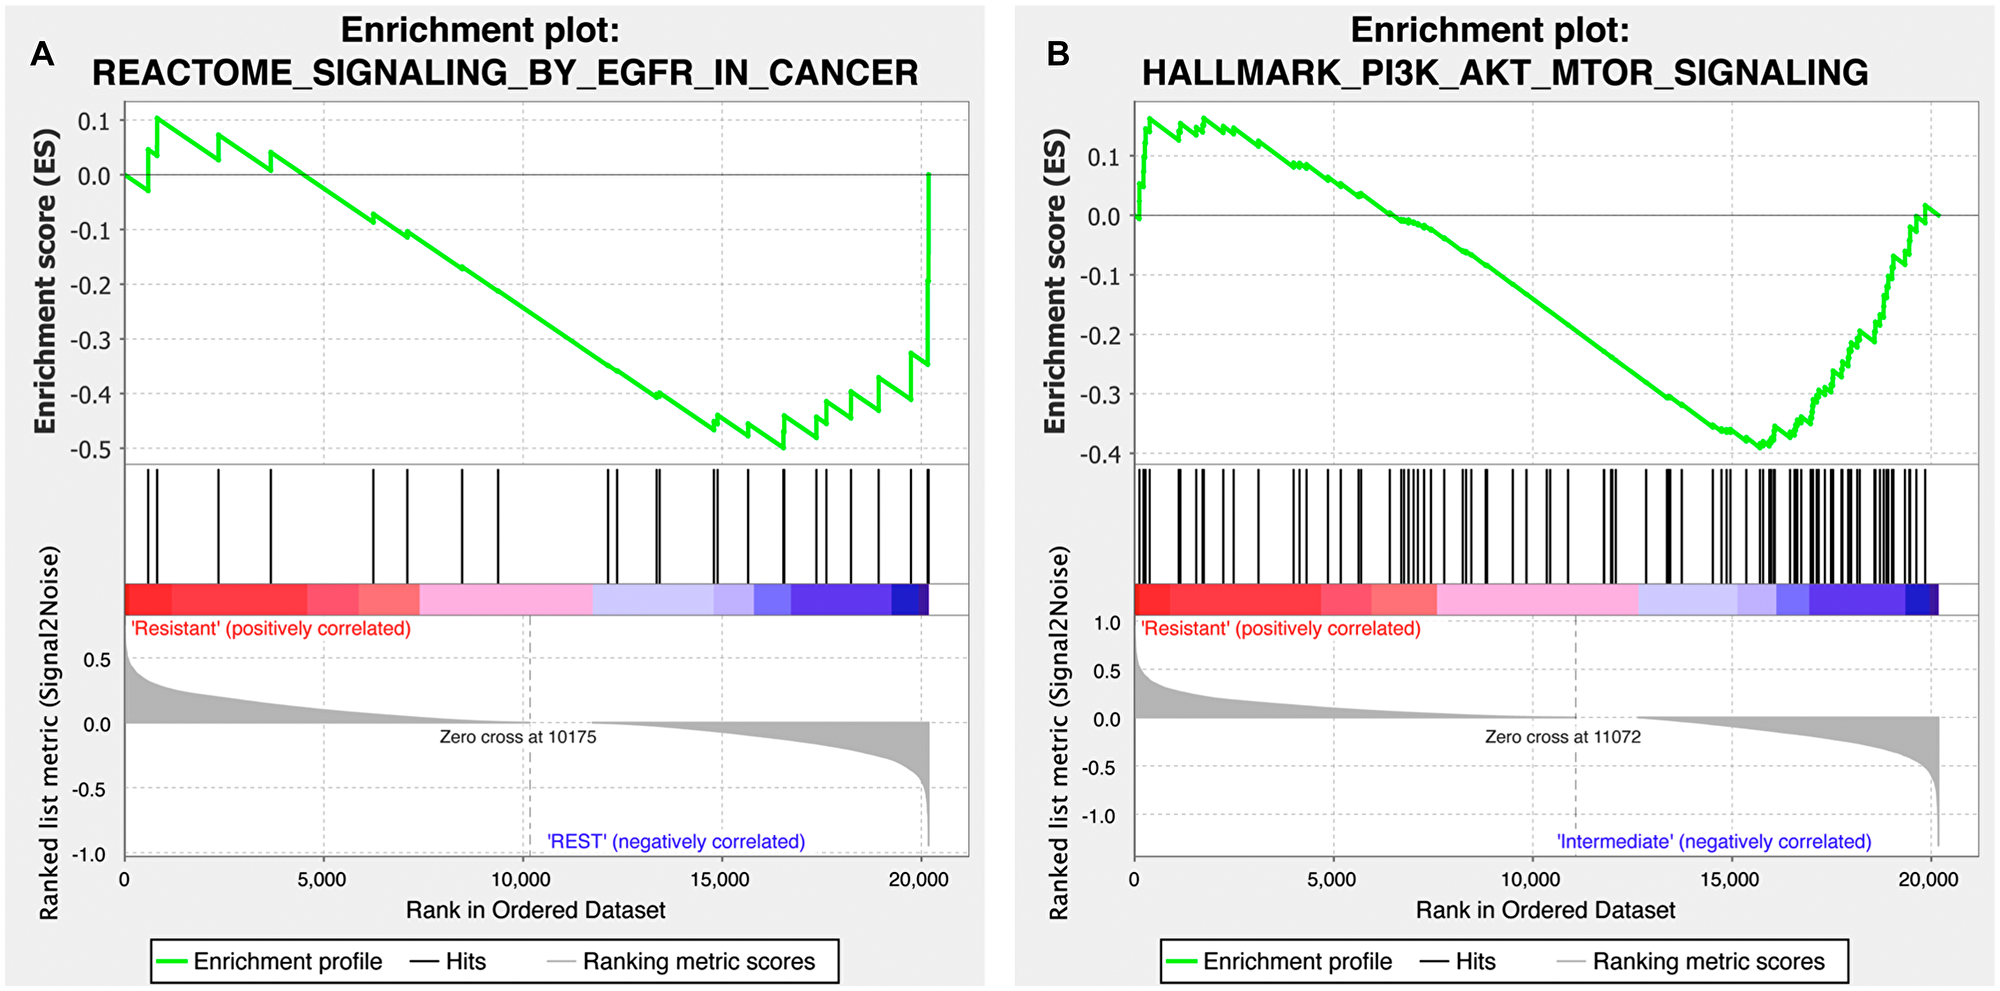 Gene set enrichment plot of the EGFR and PI3K-AKT-mTOR signaling pathways for the copanlisib and cetuximab cohorts.